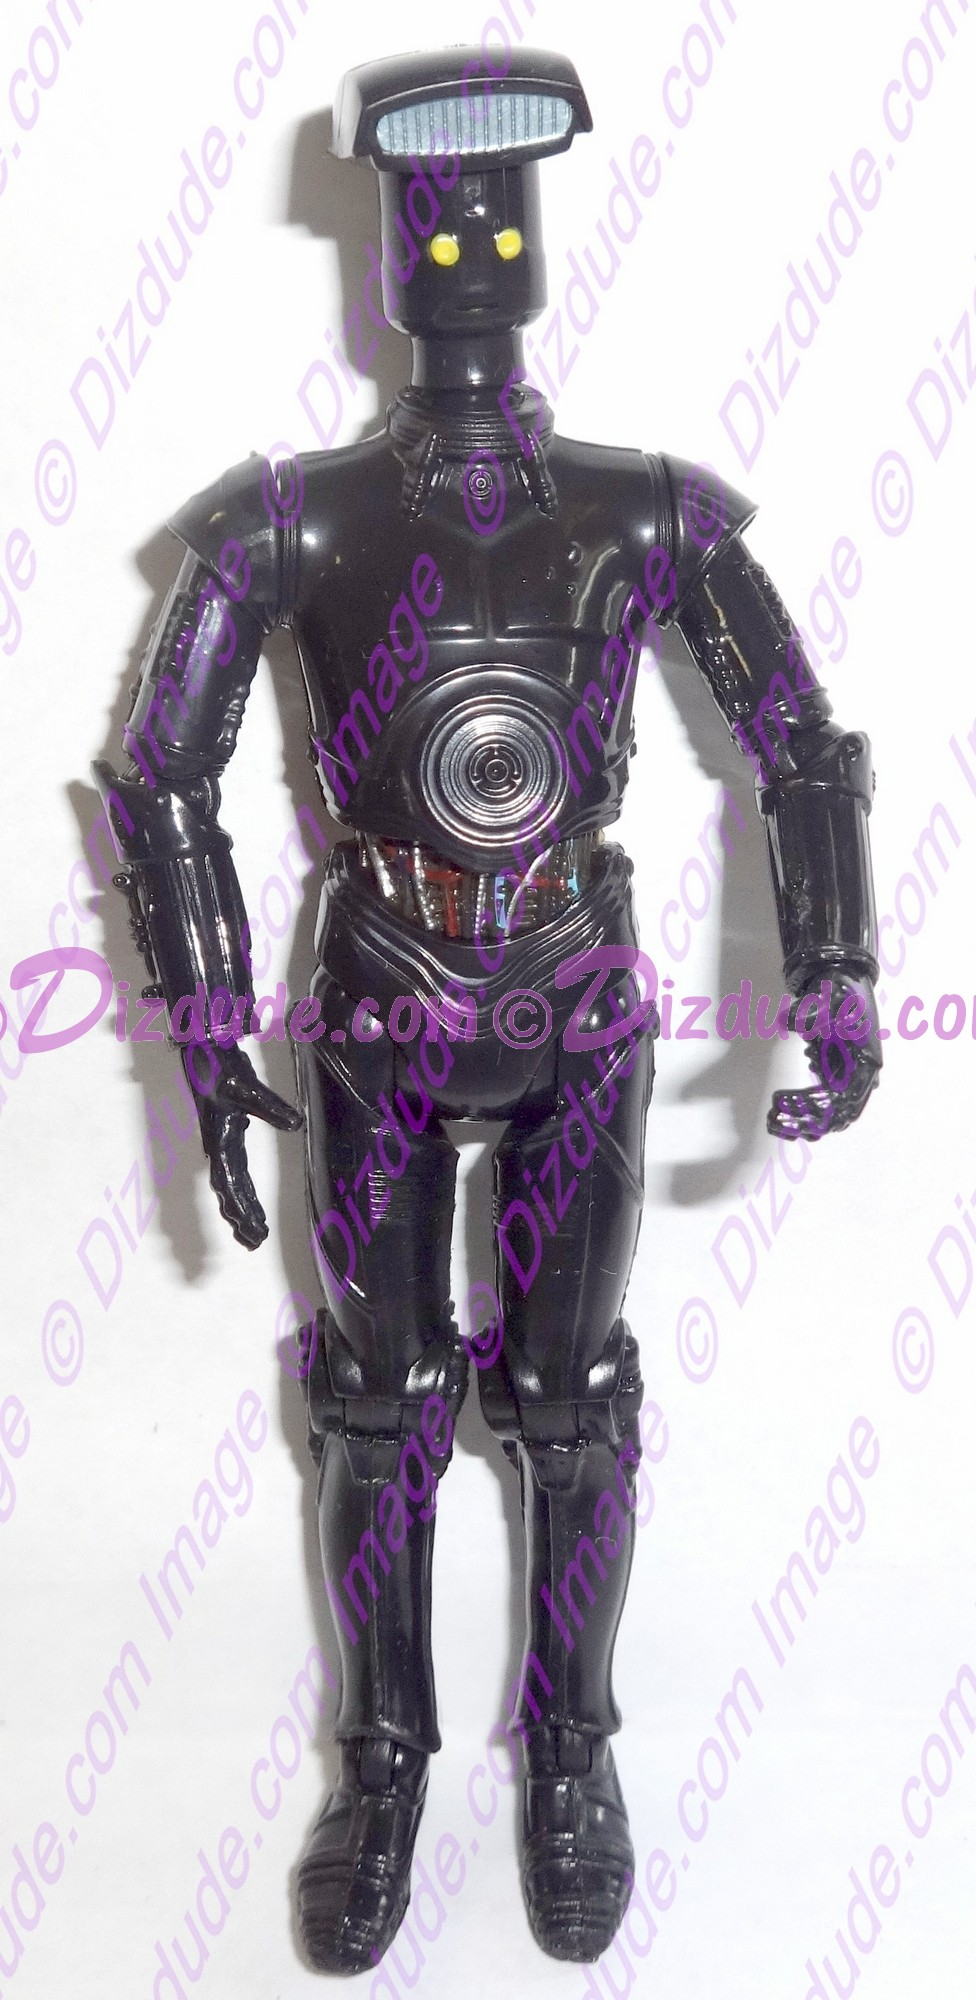 Black Vender Protocol Droid from Disney Star Wars Build-A-Droid Factory © Dizdude.com